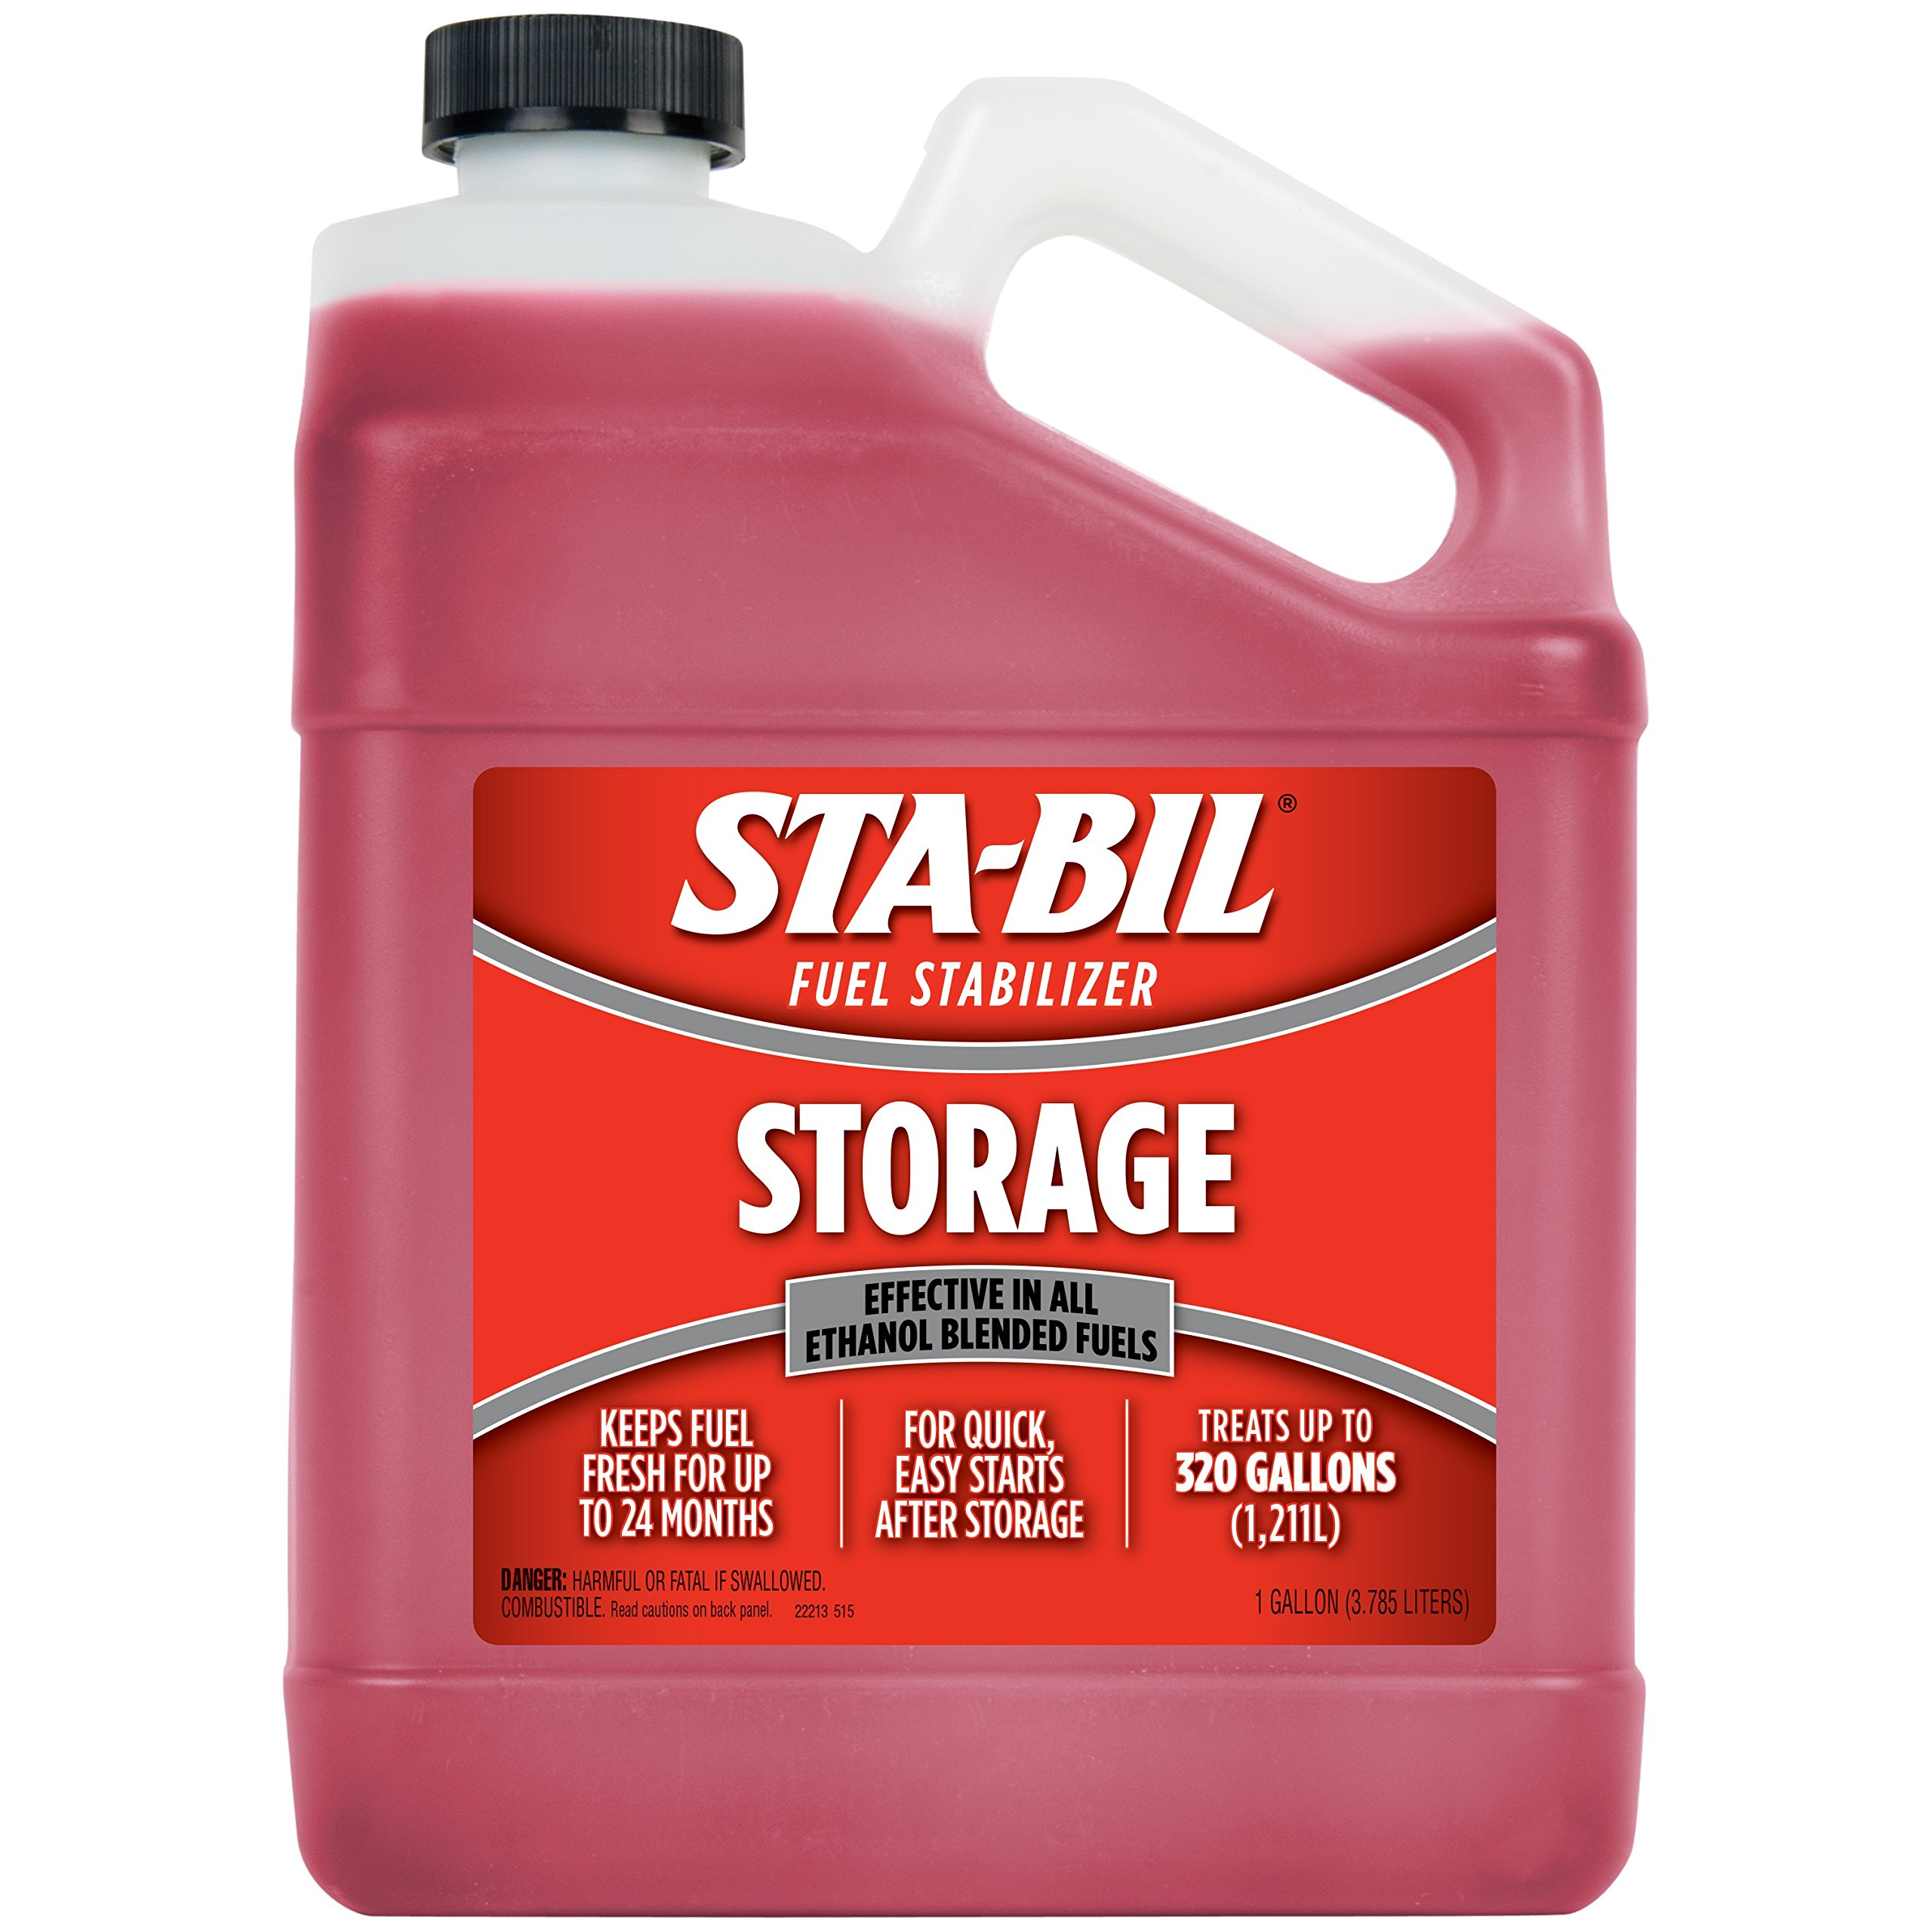 STA-BIL 22213 Fuel Stabilizer, 1 Gallon by STABIL